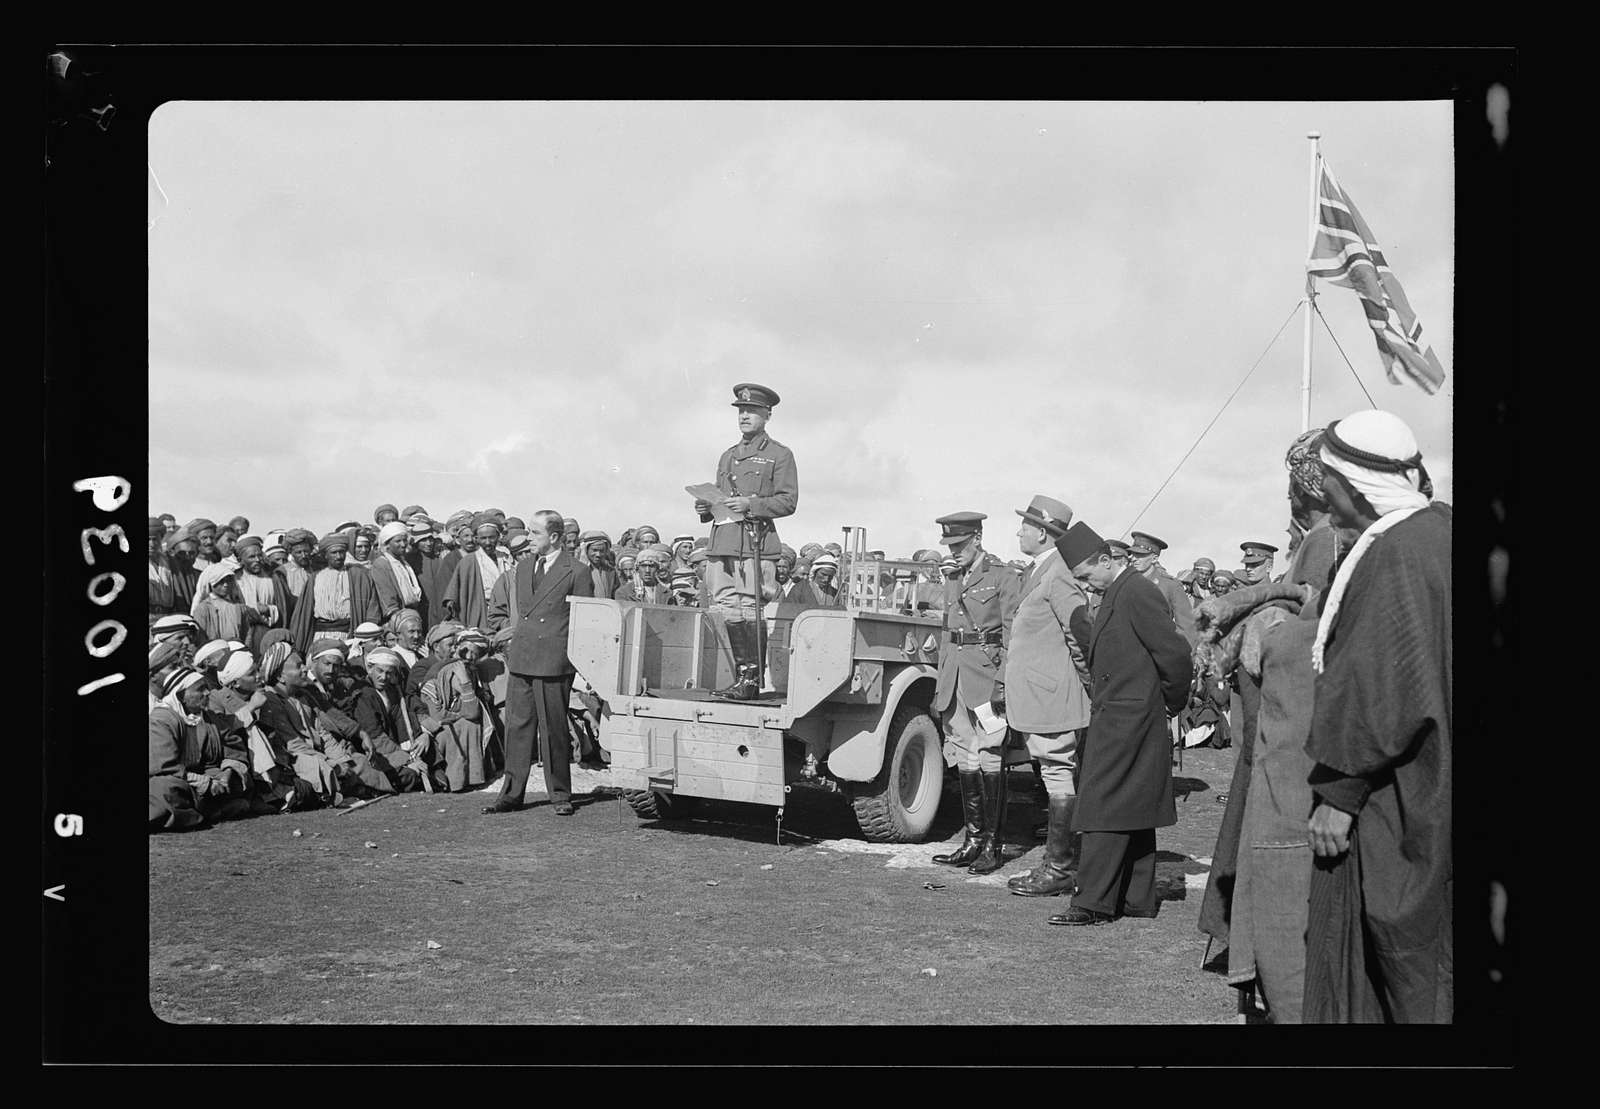 Arab demonstration at Yatta. General O'Conner speaking to the crowd from a military car